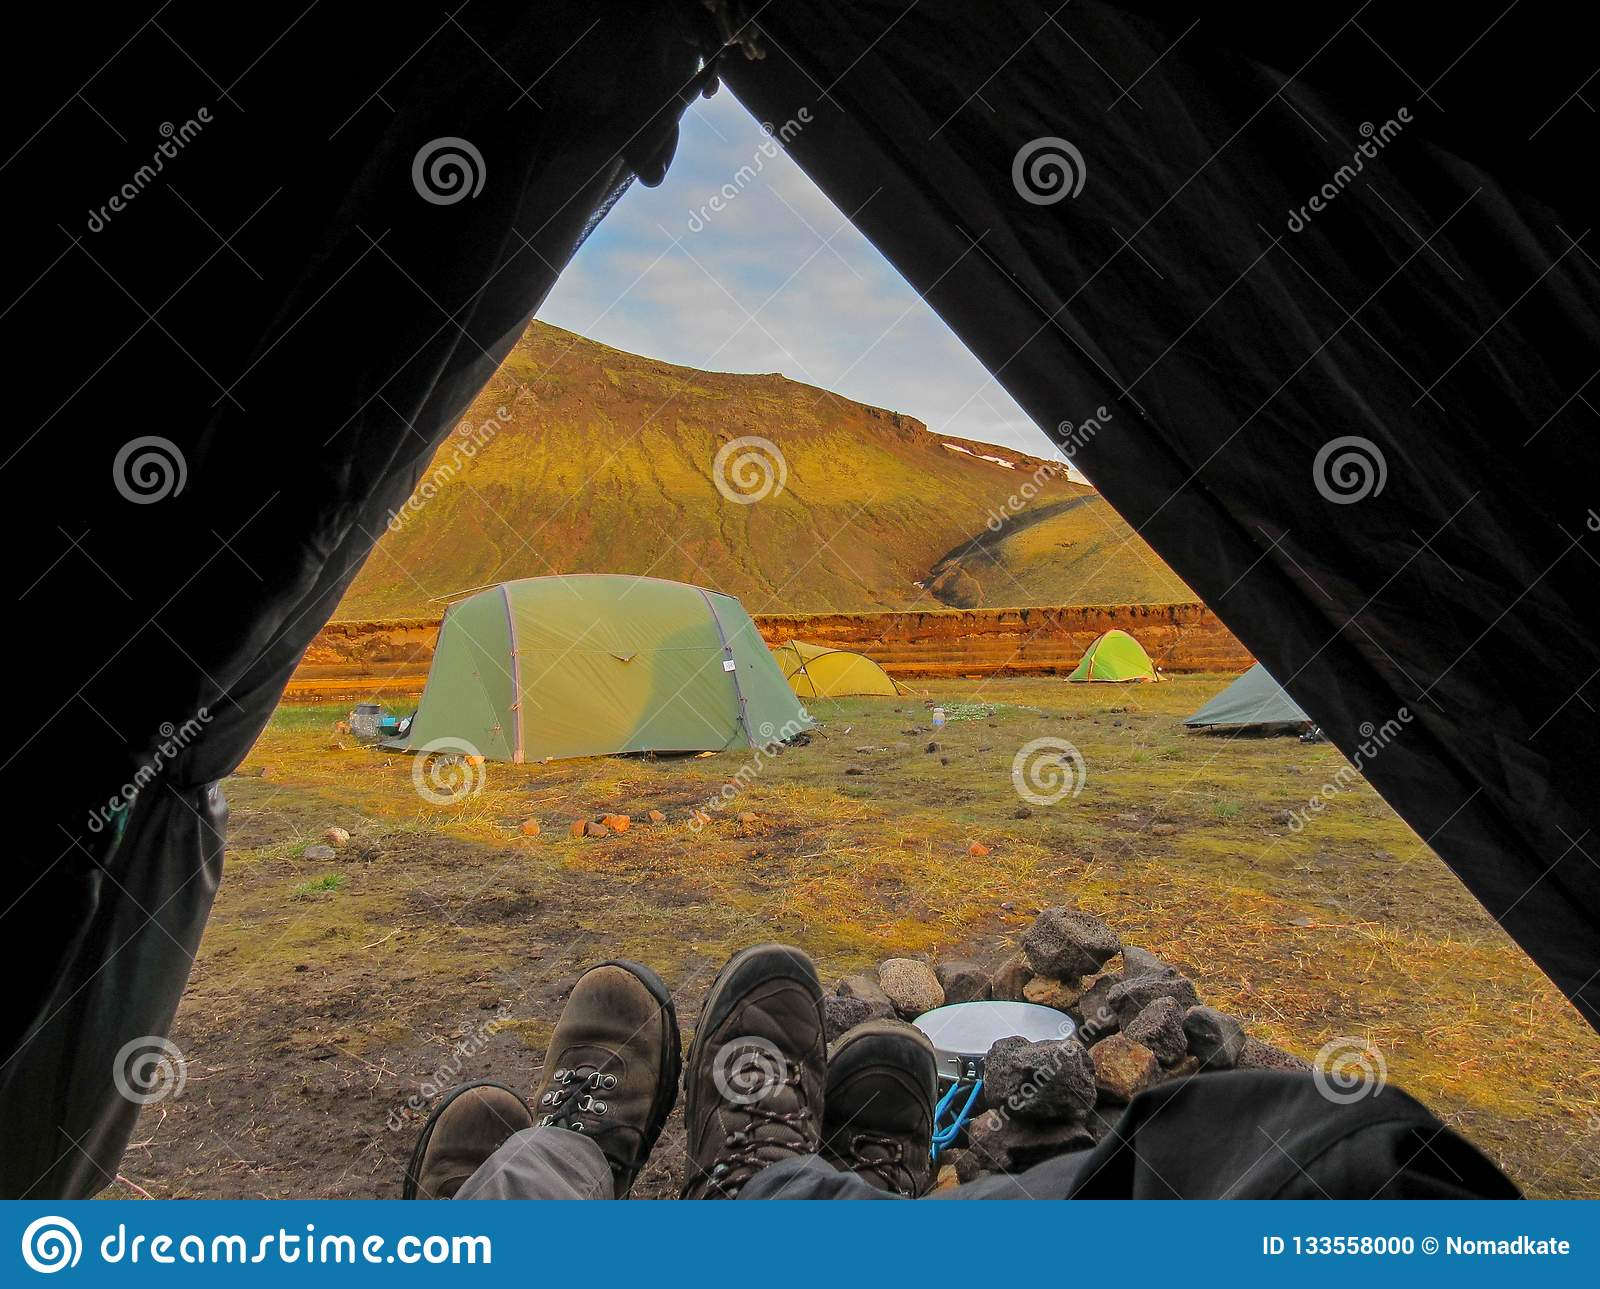 Tent lookout with couple hiking boots and mountain view at sunset, Nature reserve, highlands of iceland